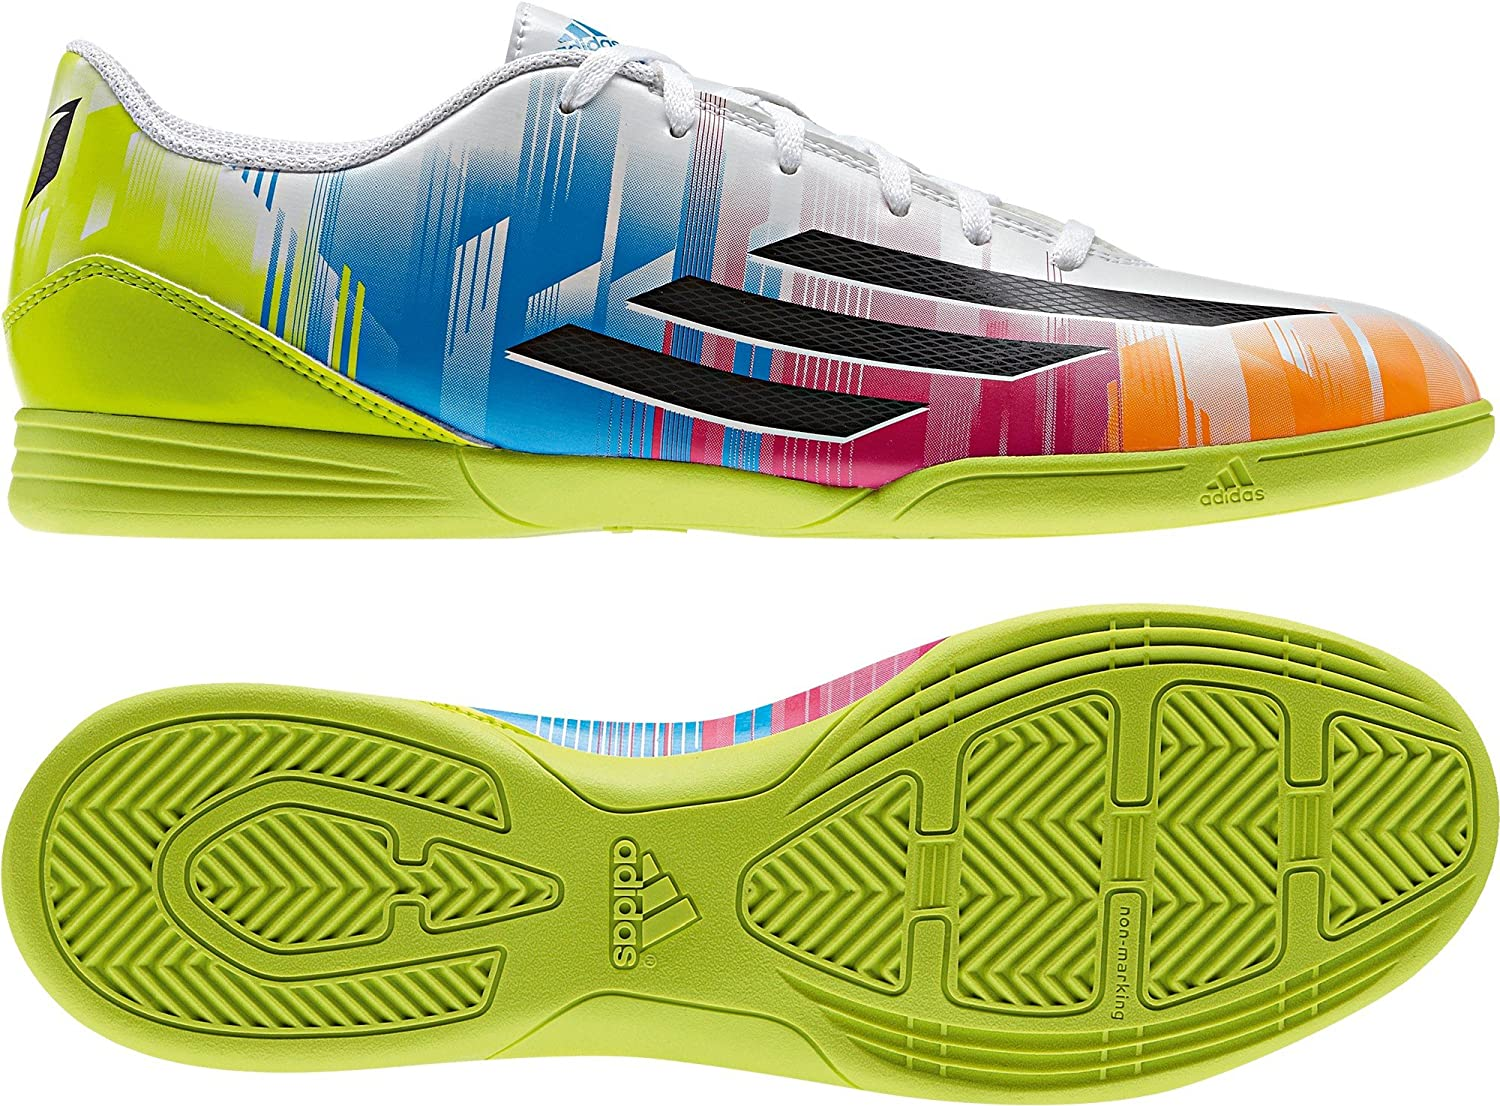 F32741 Adidas F5 IN Messi White 42 23 UK 8,5: